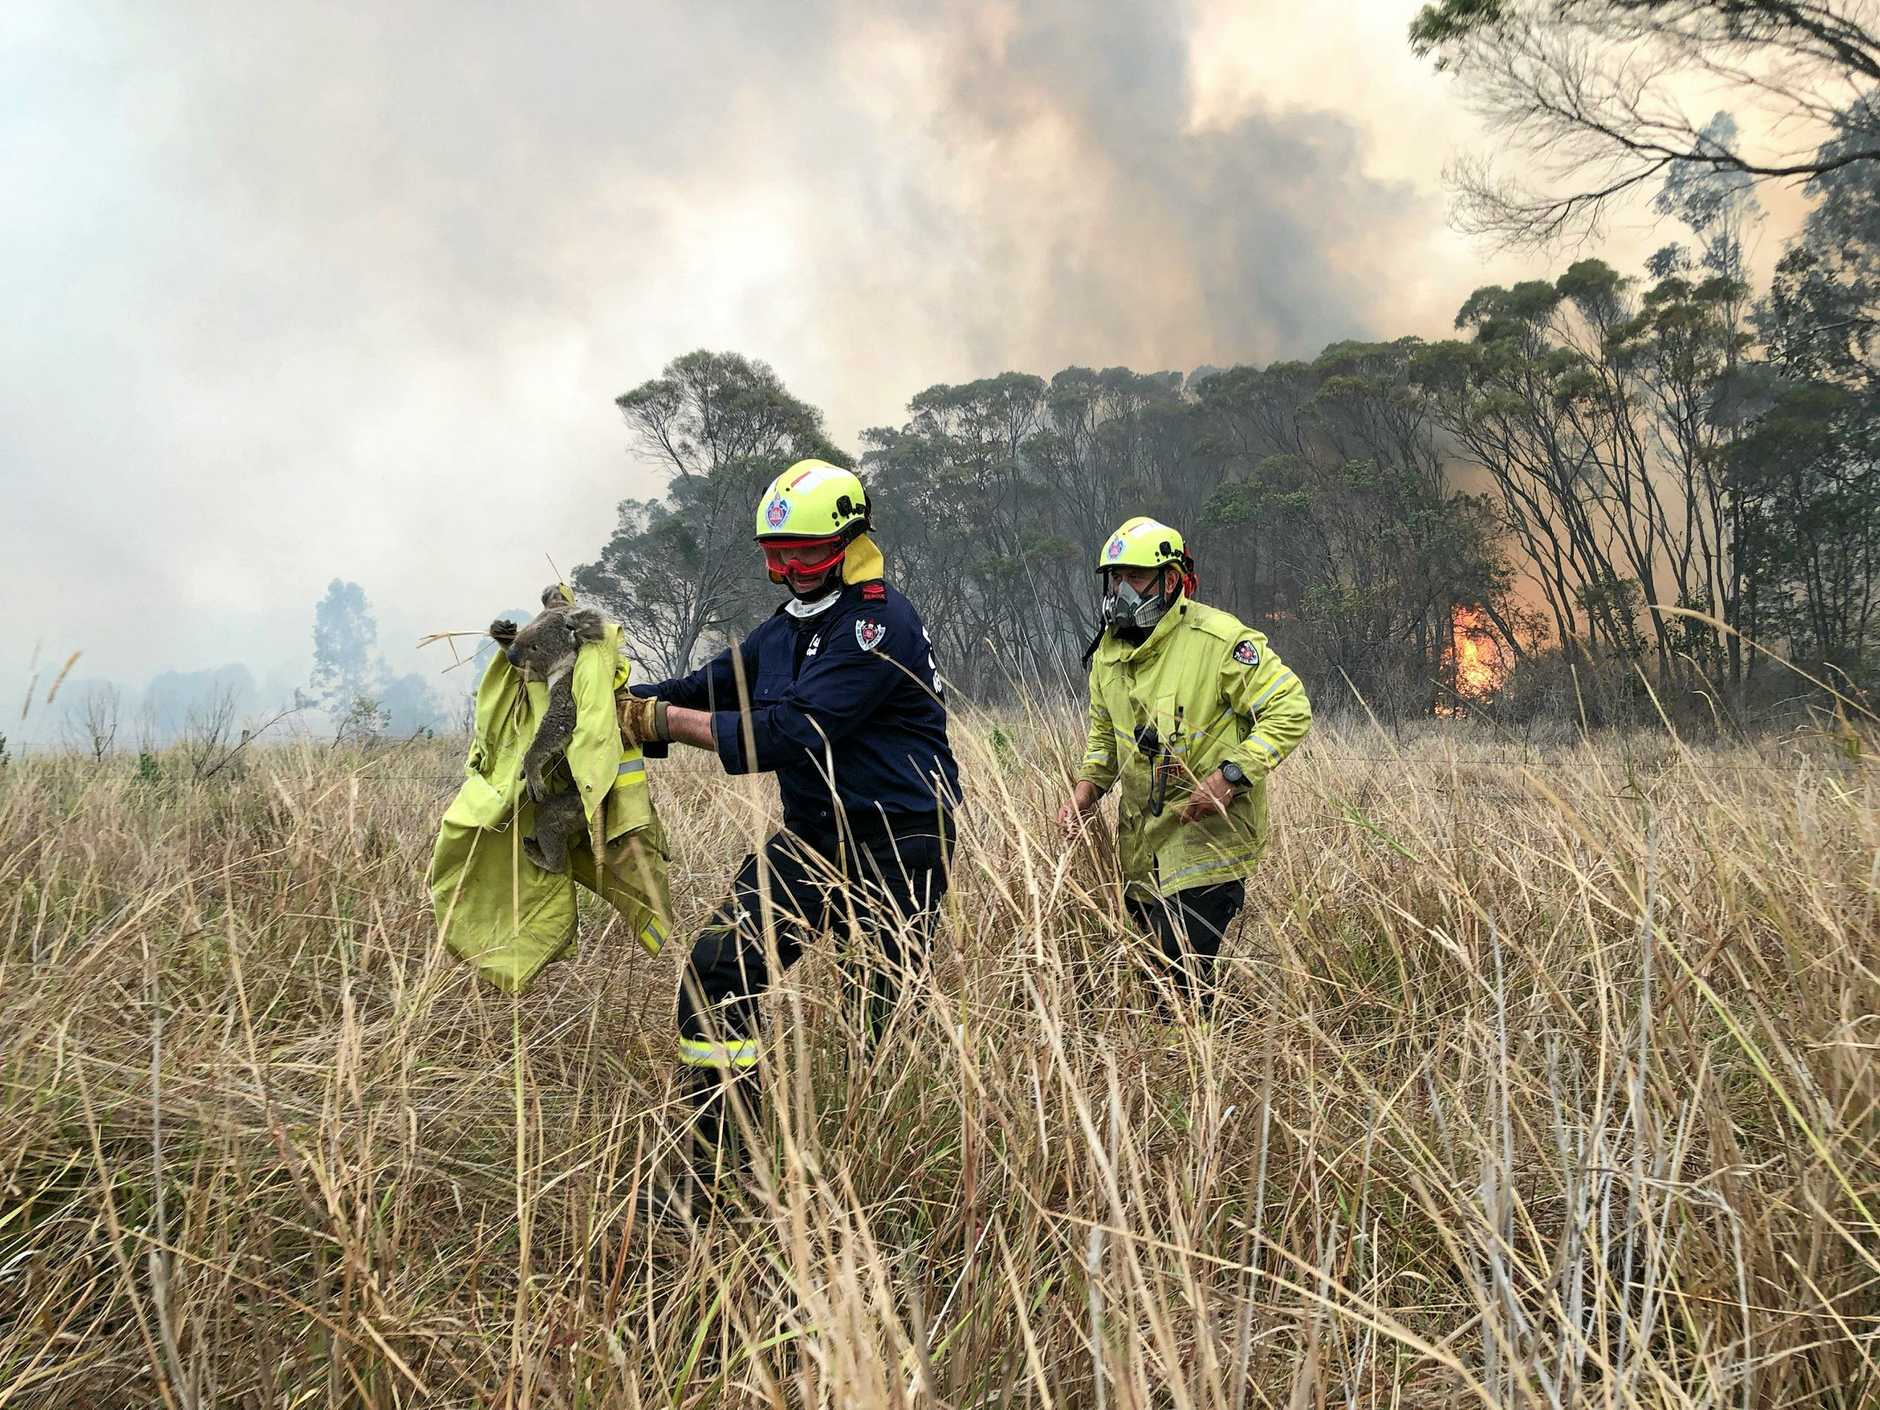 KOALA RESCUE: Four quick-thinking Fire & Rescue NSW fire-fighters ran towards a bushfire to rescue a frightened koala at Jackybulbin Flat at the Bora Ridge fires.